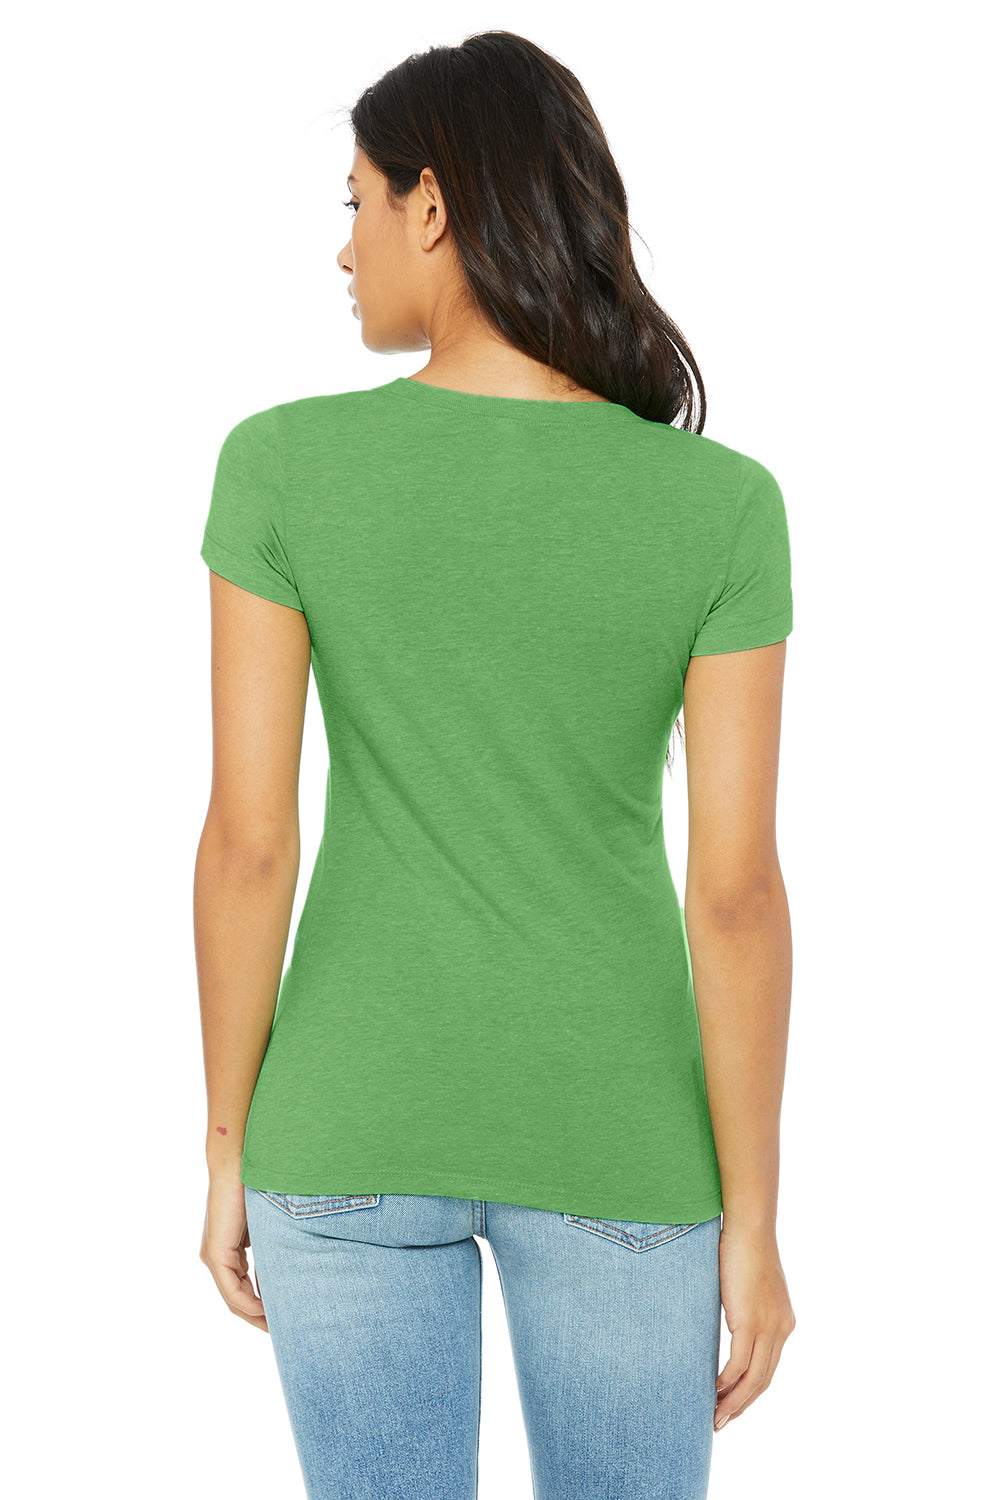 Bella + Canvas B8413 Womens Short Sleeve Crewneck T-Shirt Green Back